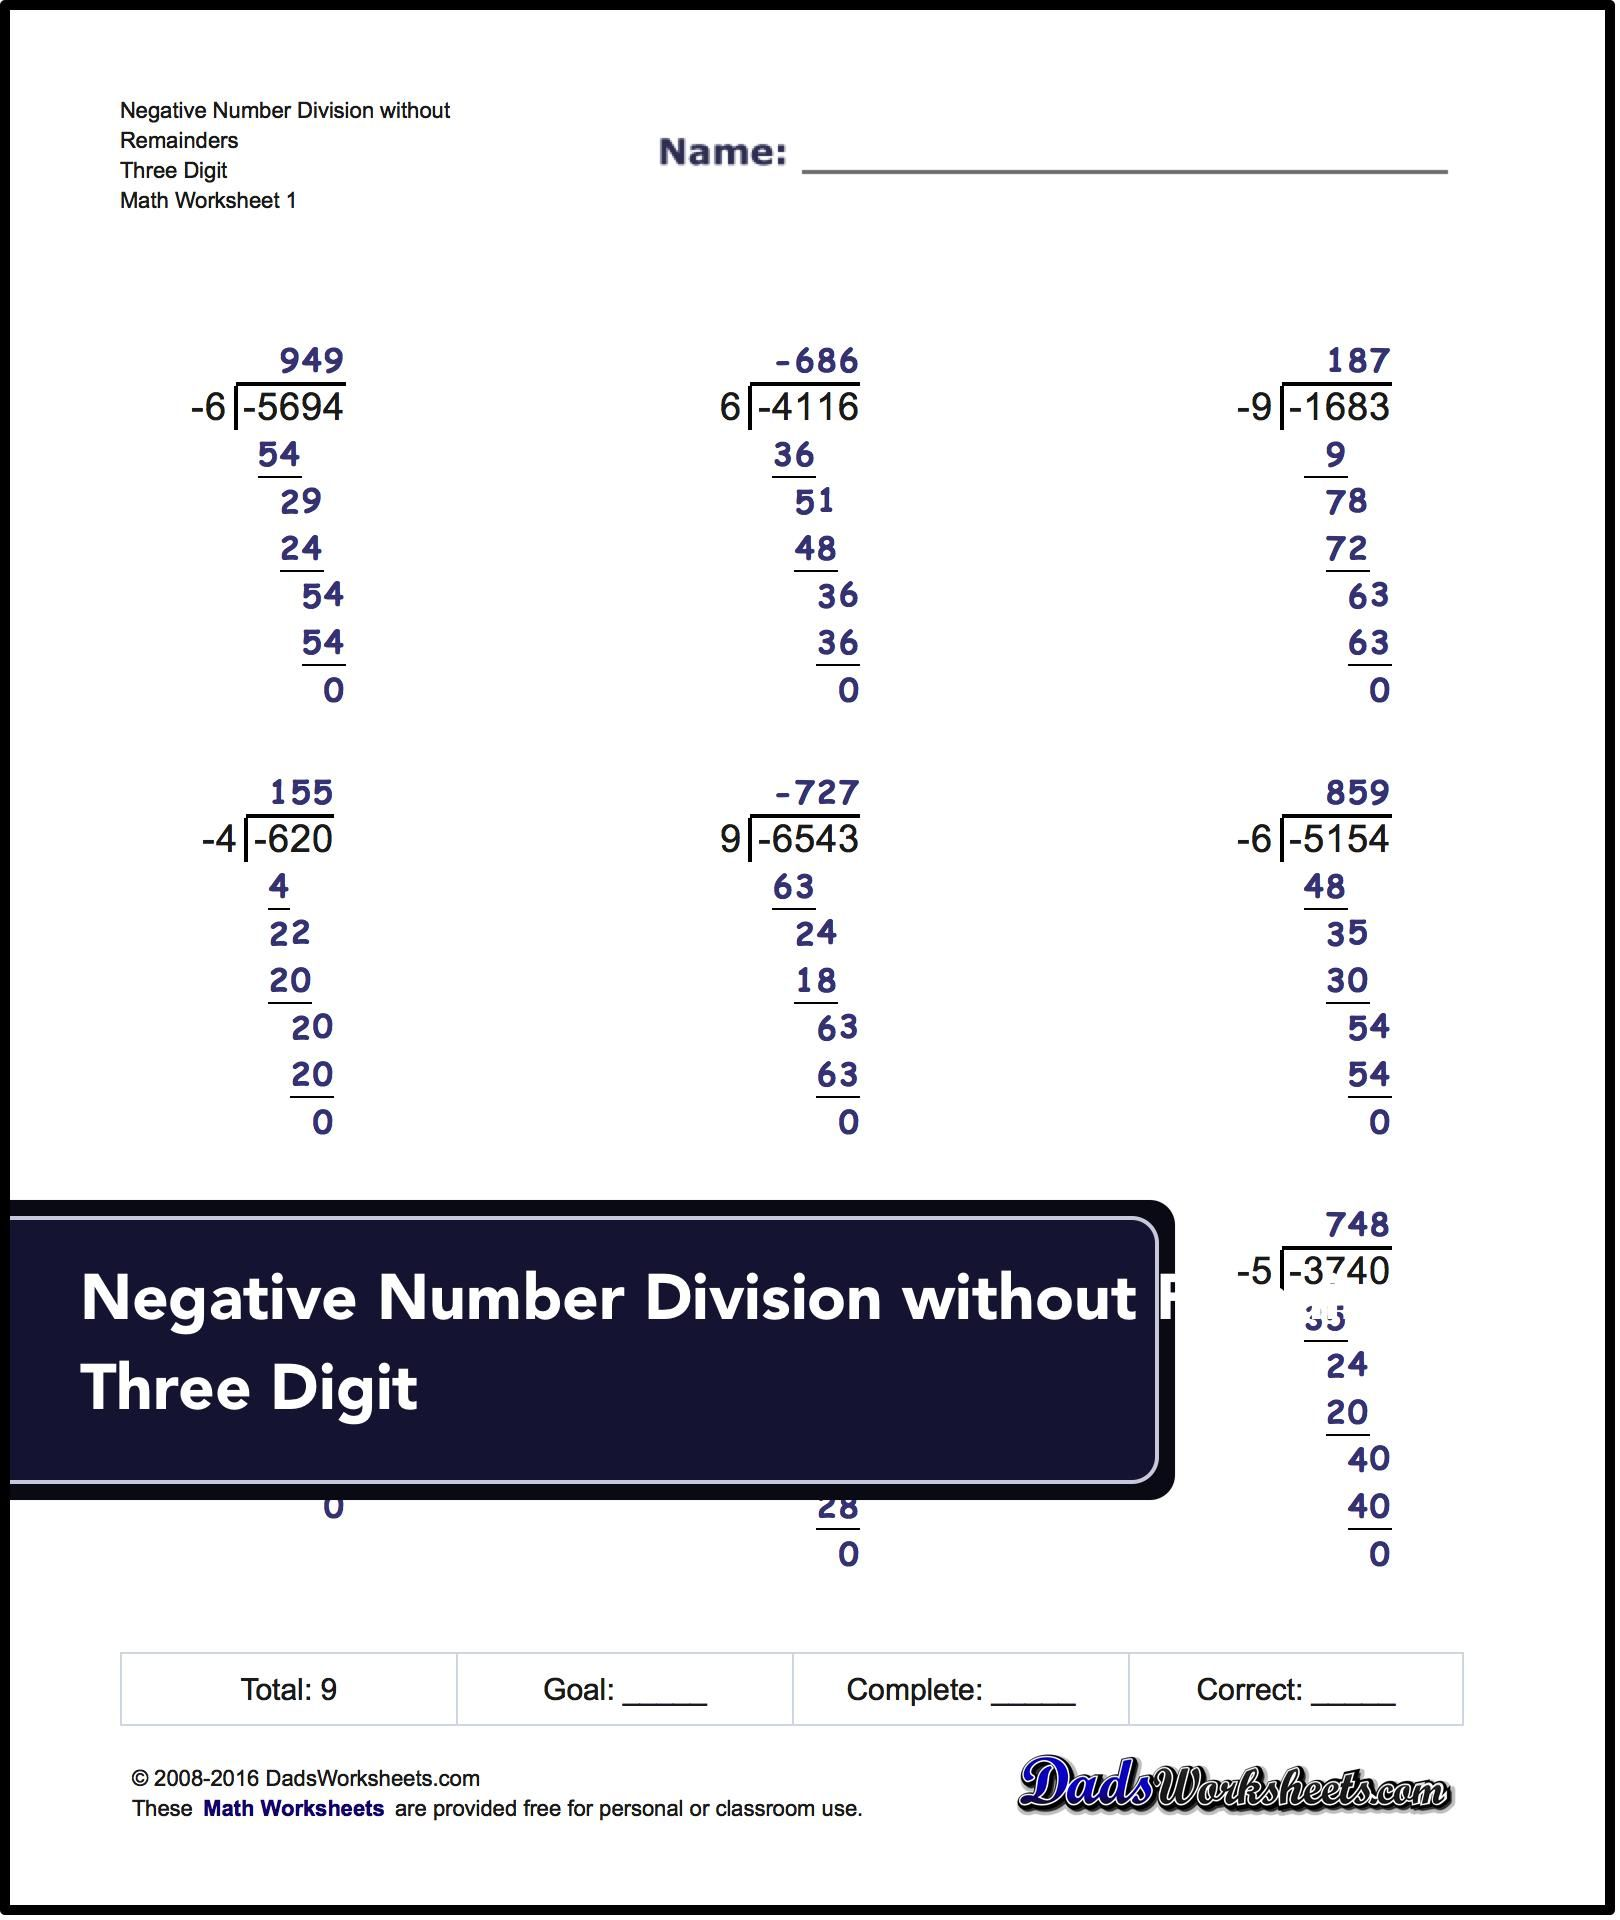 Free Math Worksheets For Negative Numbers Math Worksheets